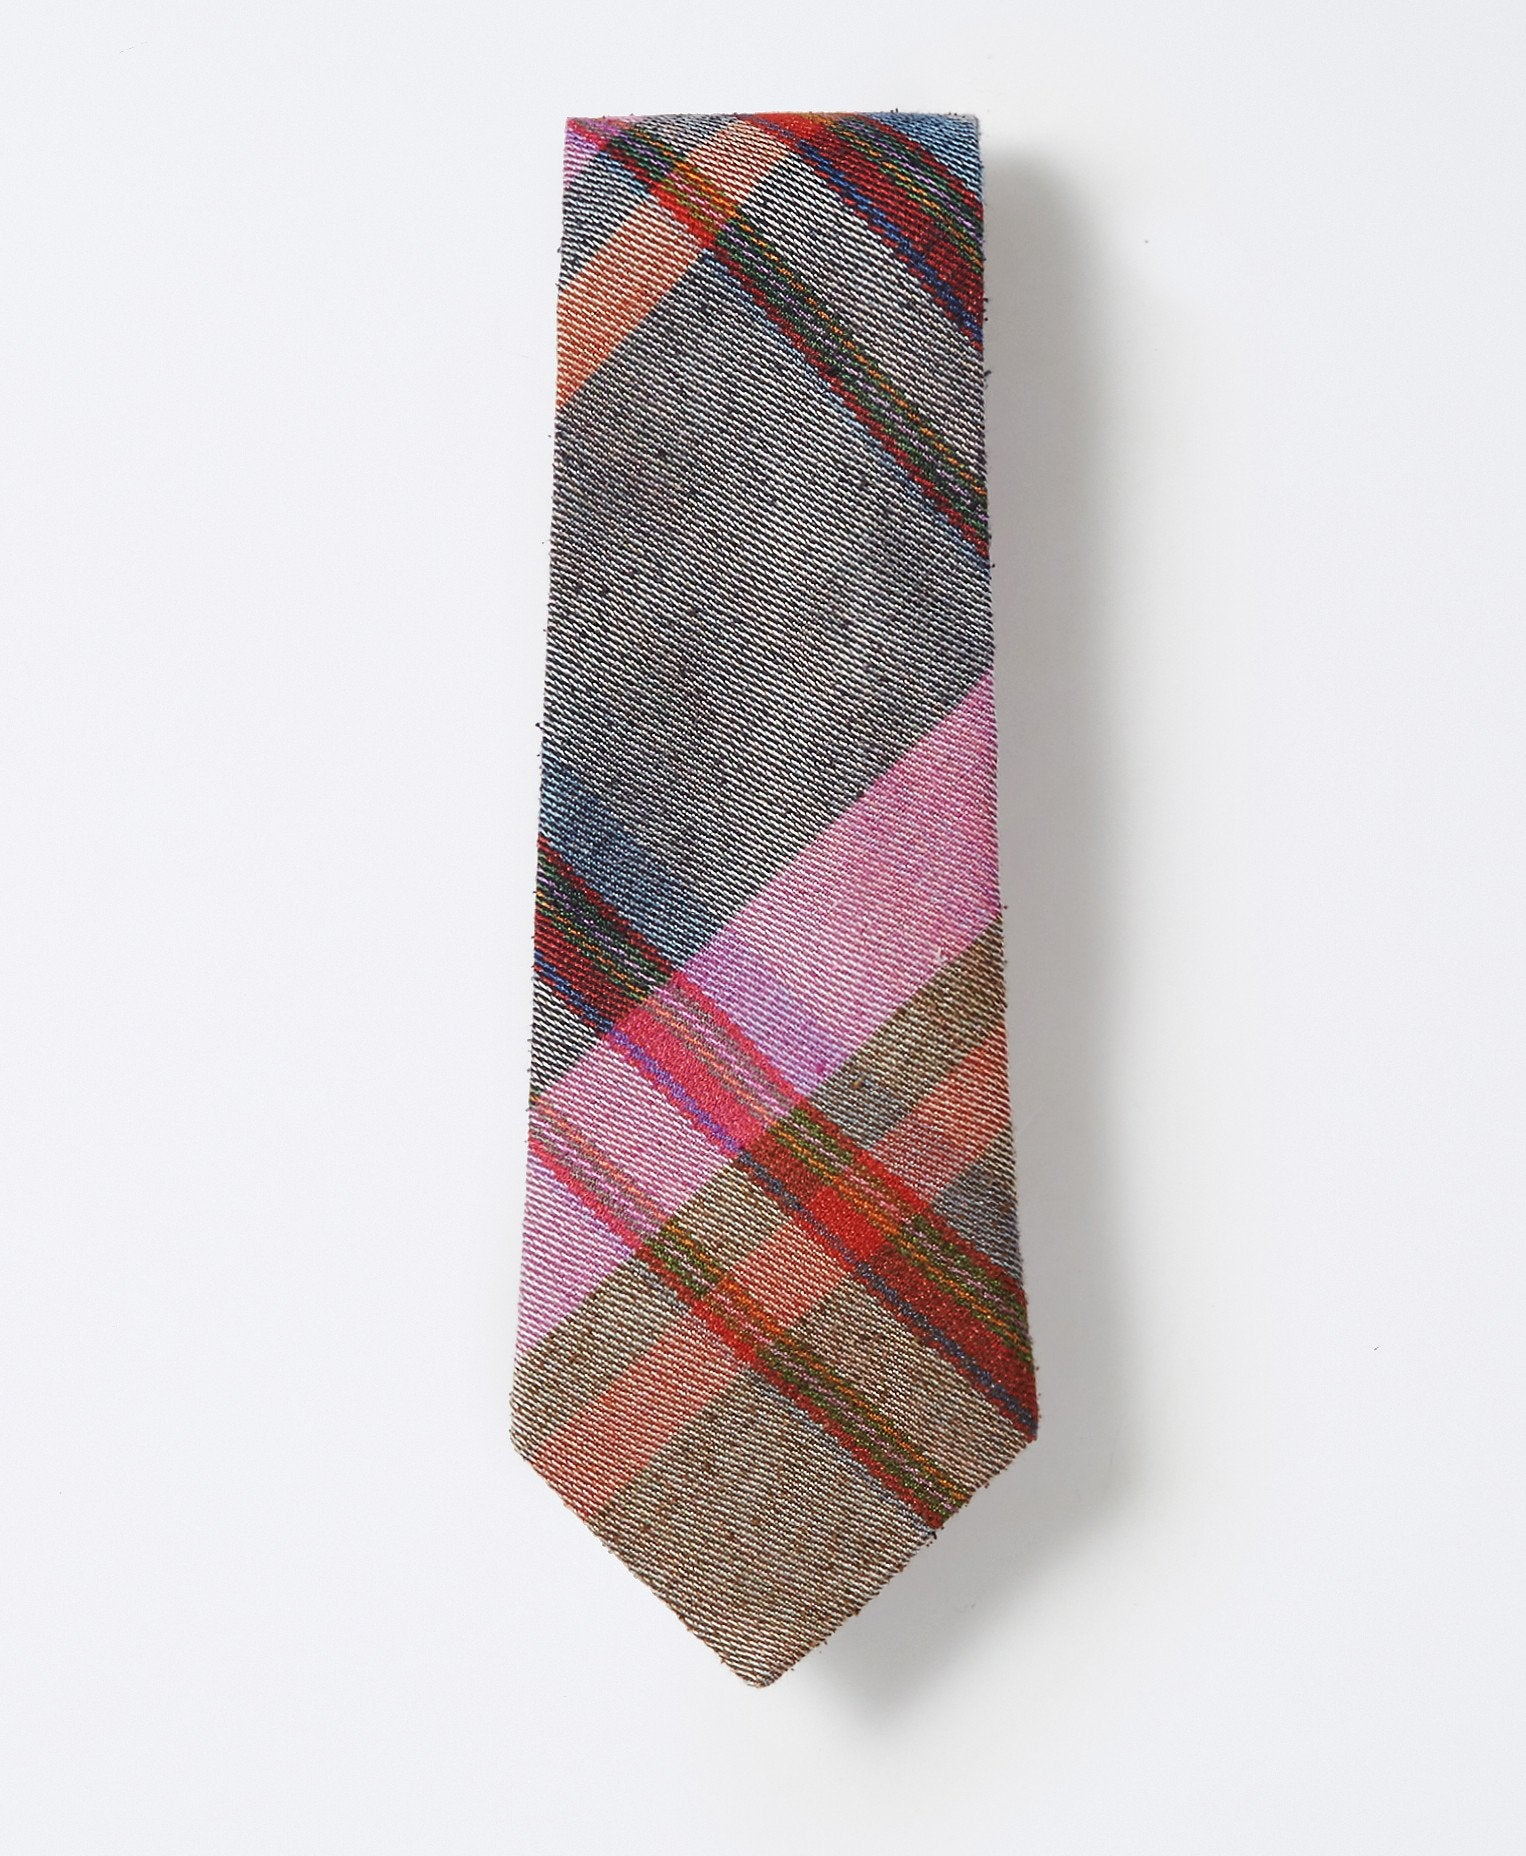 The Fiat Necktie